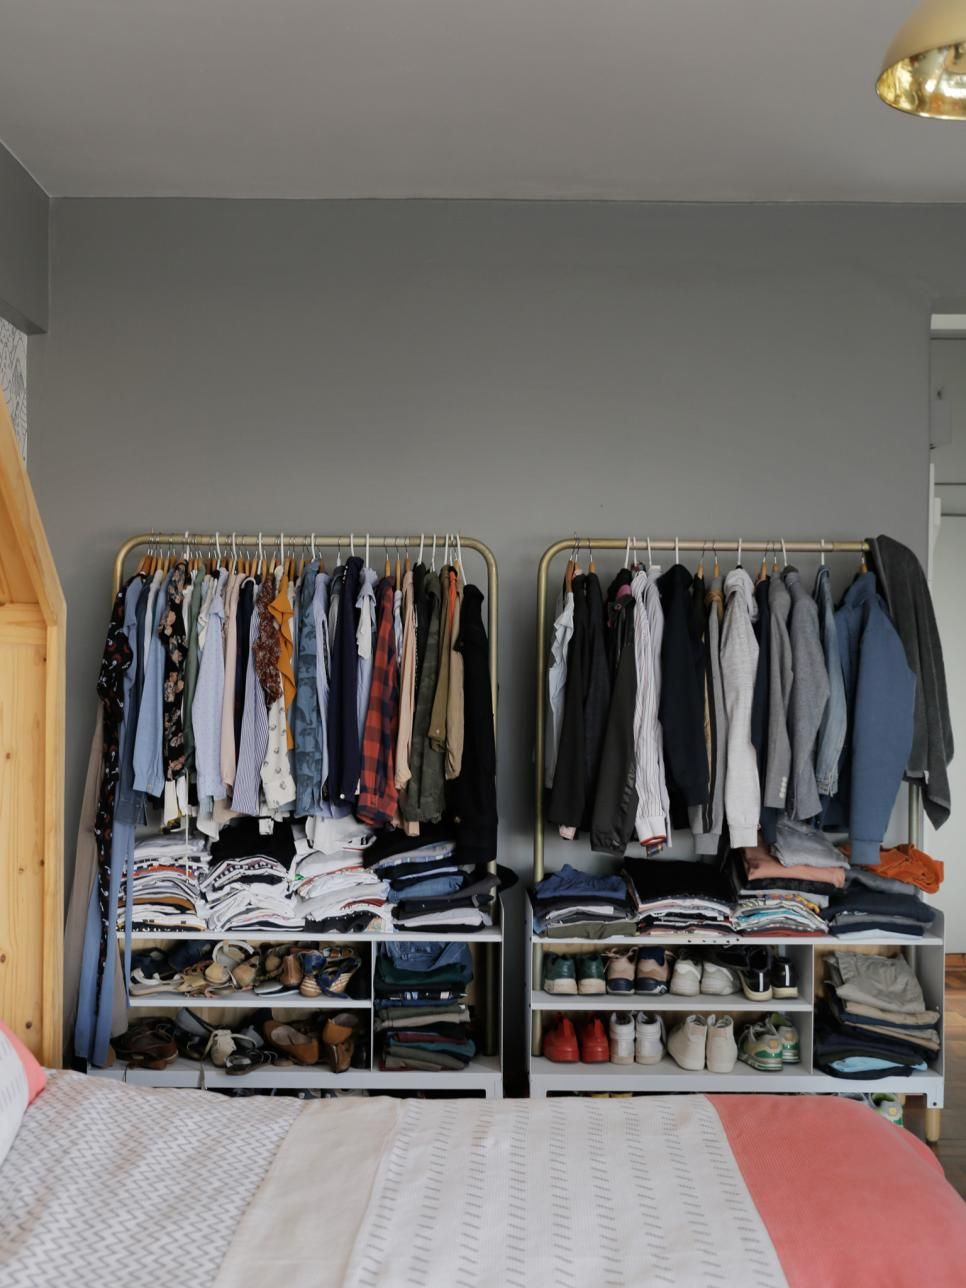 Gone Are The Days Where Clothing And Accessories Hide Behind Closed Doors These Functional Stylish Wardrobe Options Perfect Storage Solutions For